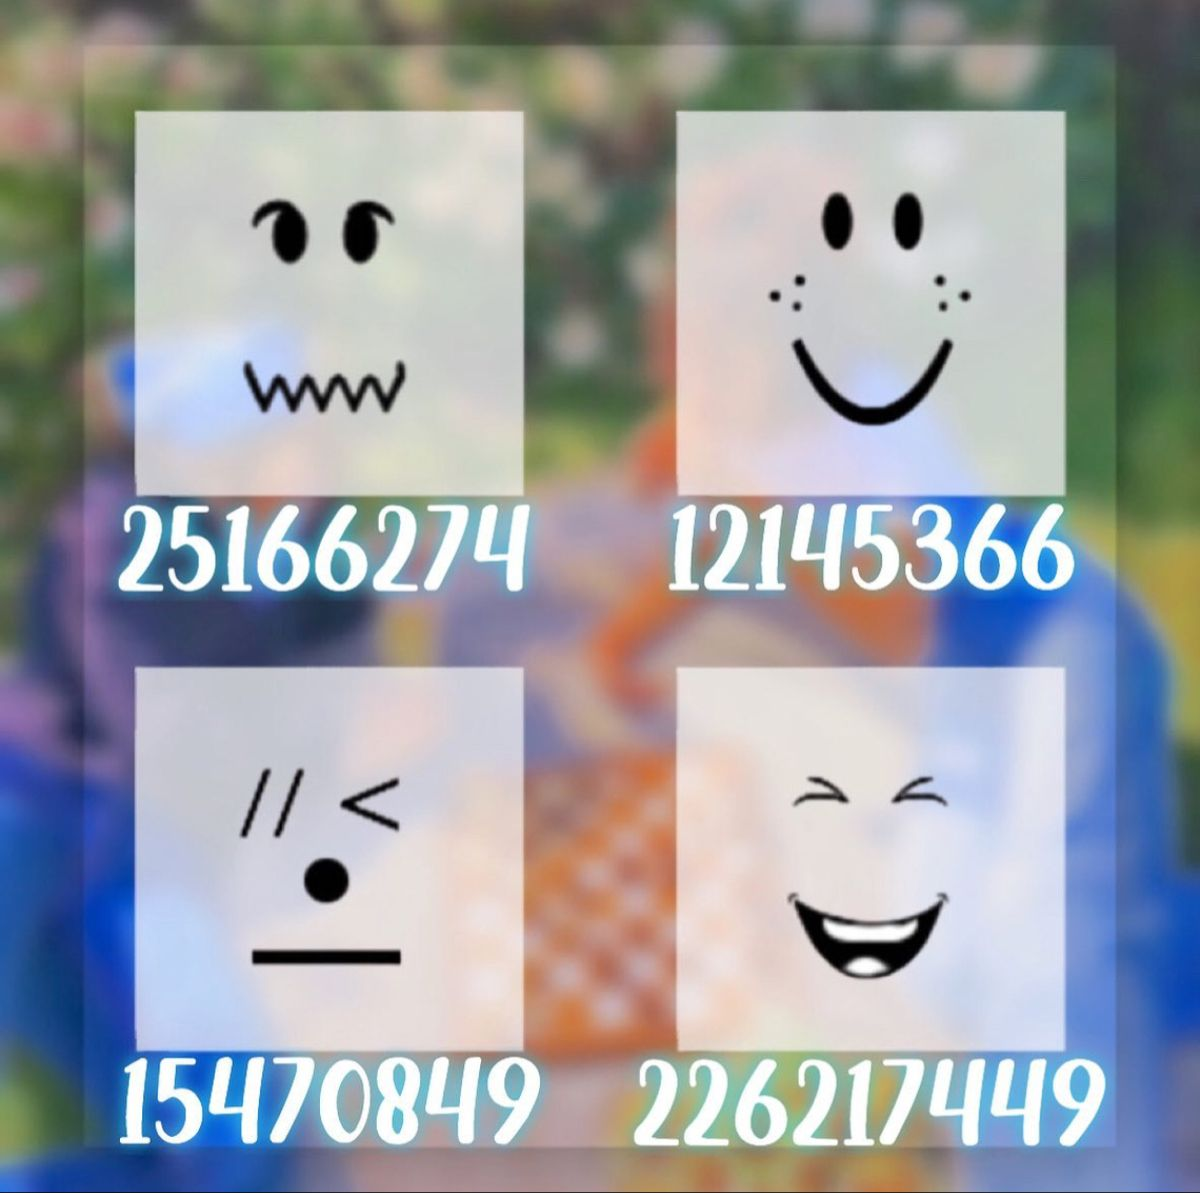 Aesthetic Face's in 2020 Roblox, Roblox pictures, Coding